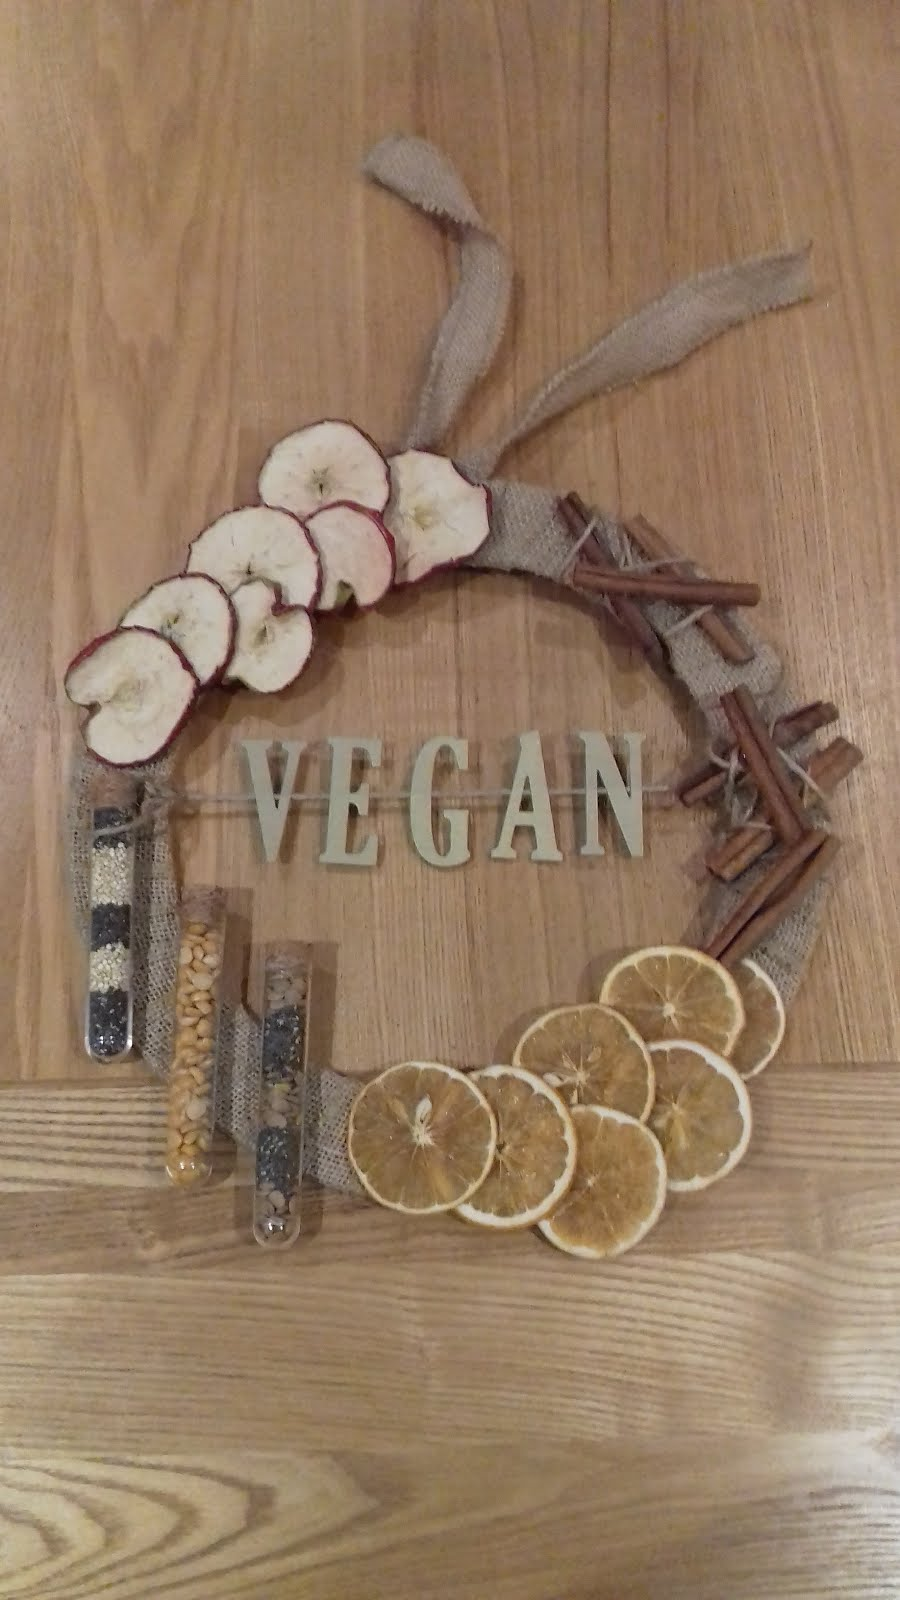 Vegan Wreath